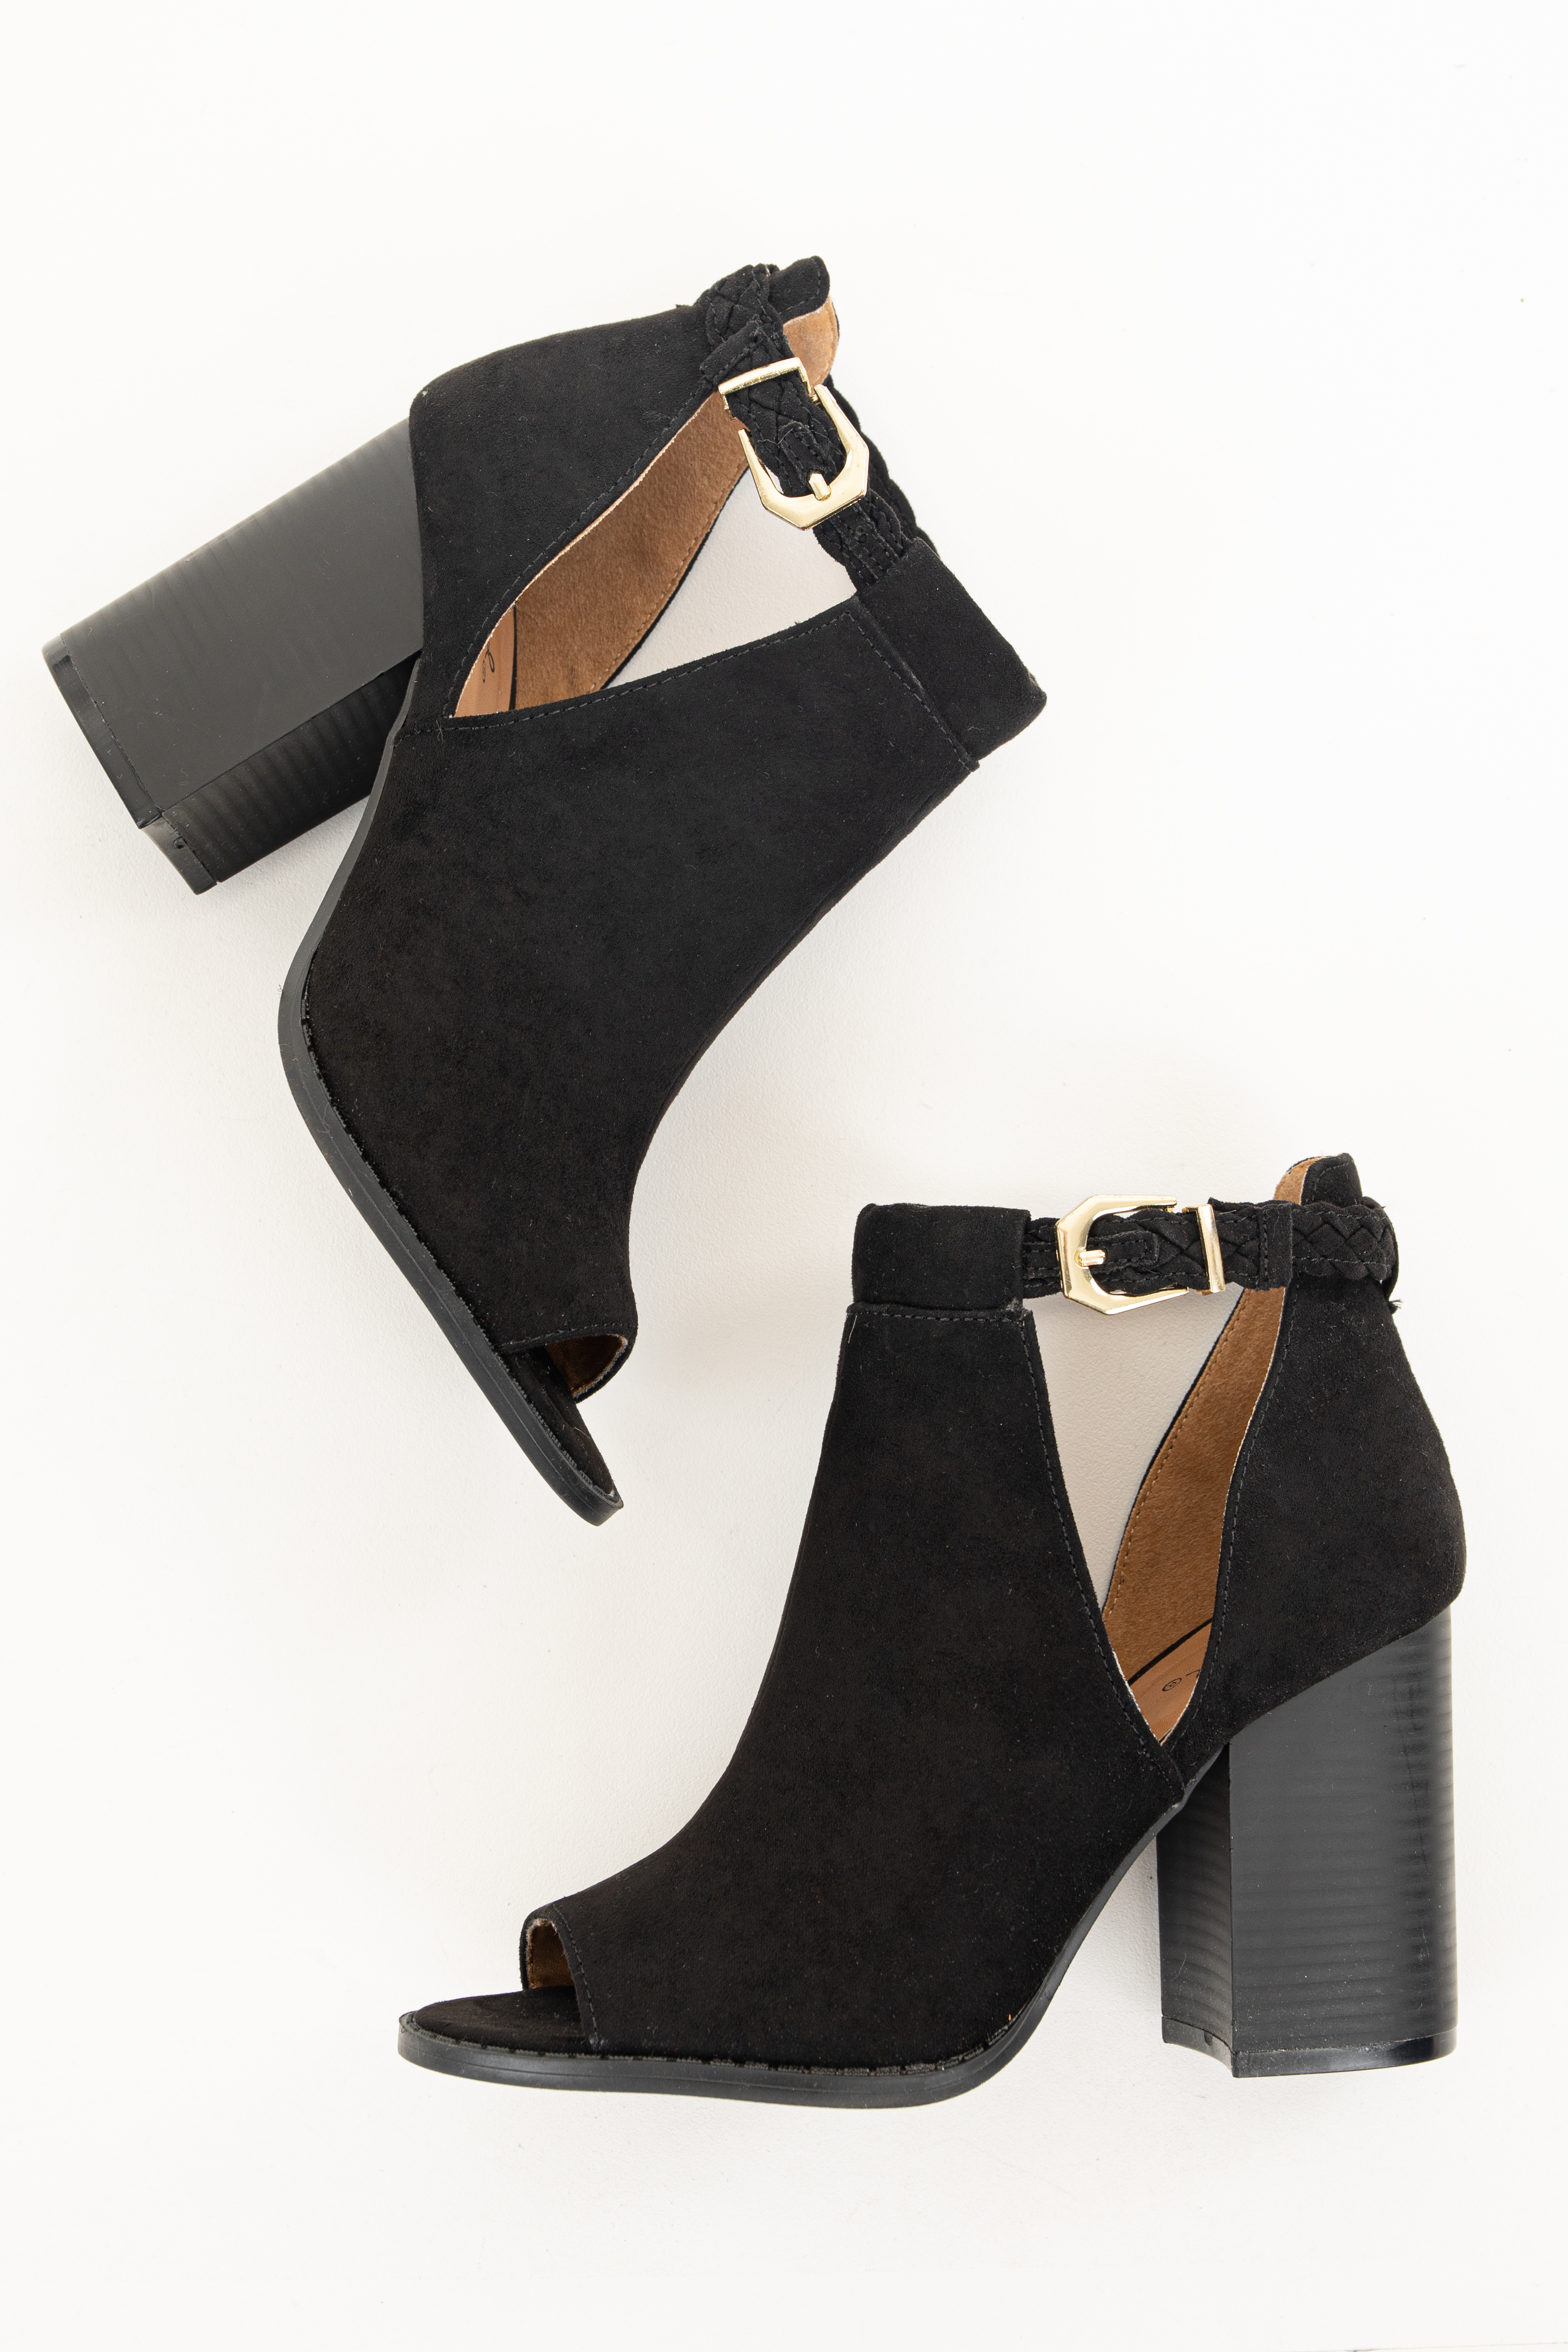 Black Faux Suede Open Toed Heels with Braided Strap Detail